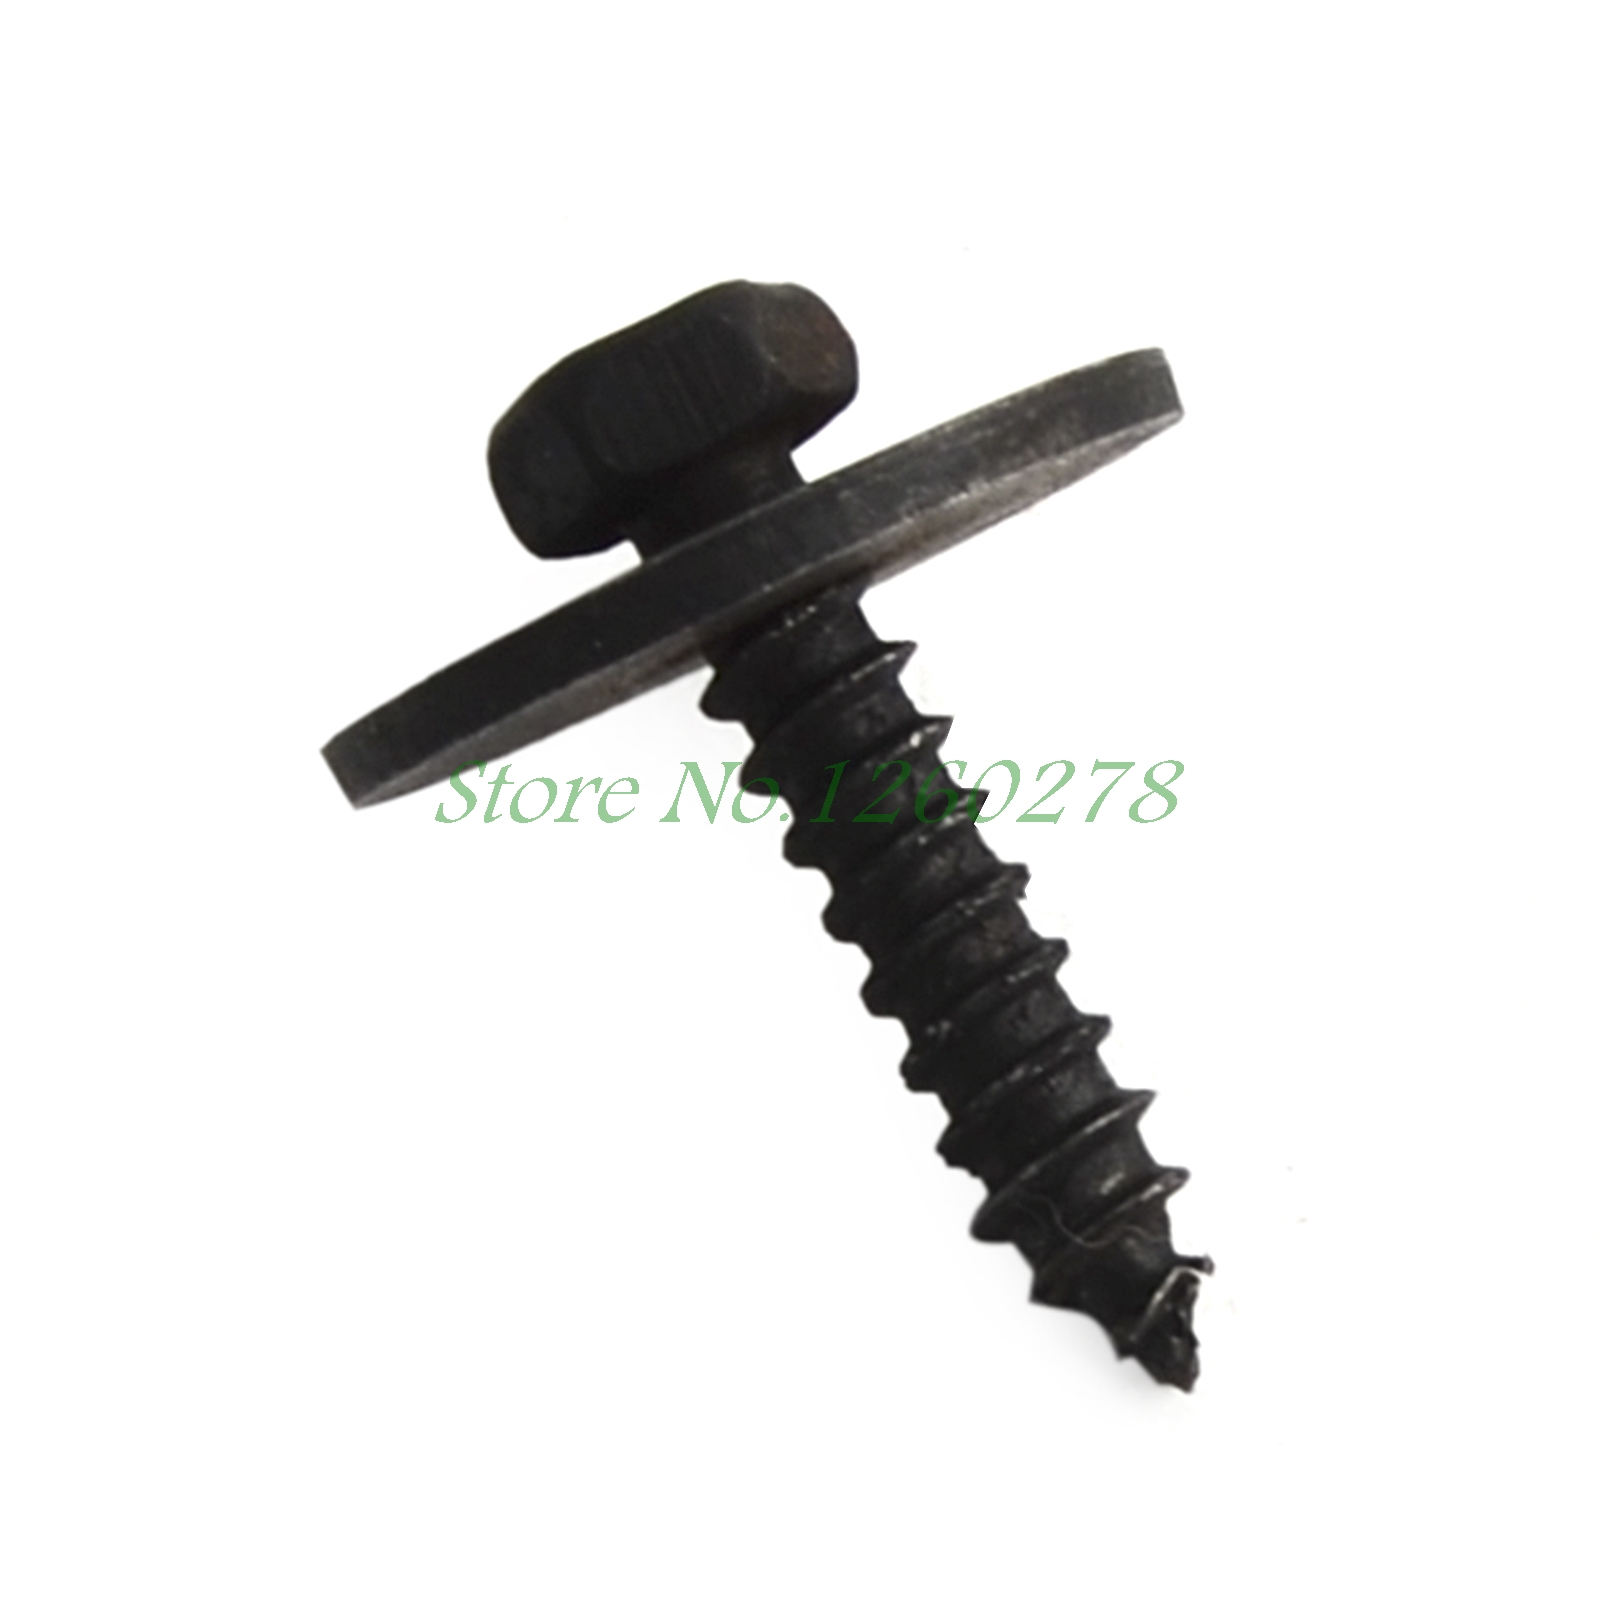 Engine Undertray Under Cover Clips Screws For Mercedes Benz C Class